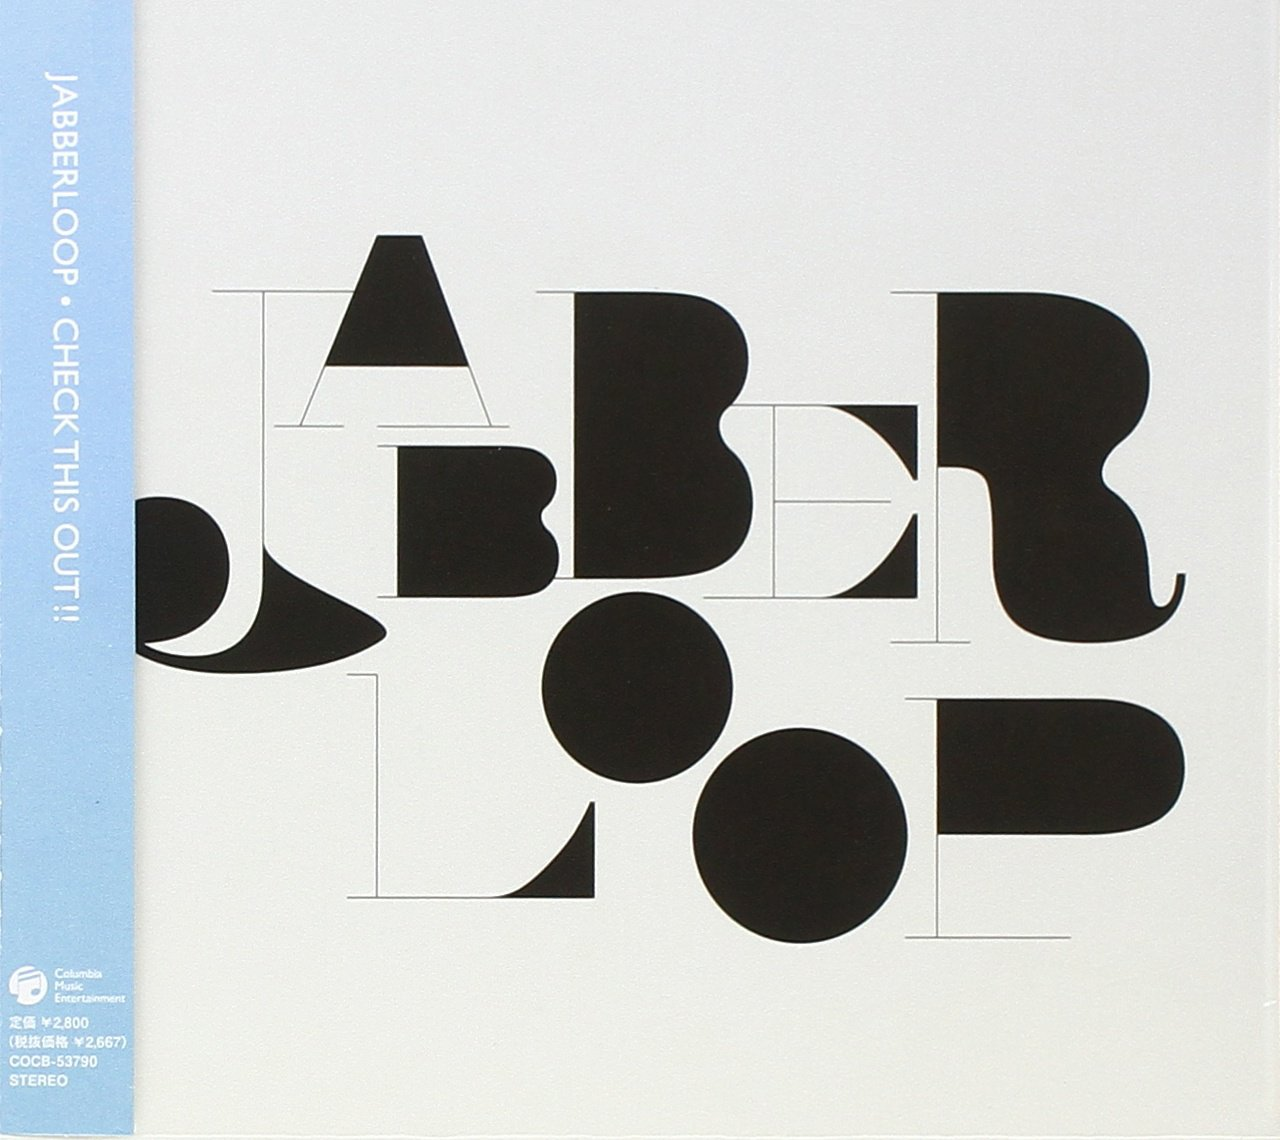 CHECK THIS OUT!! -JABBERLOOP (CD)